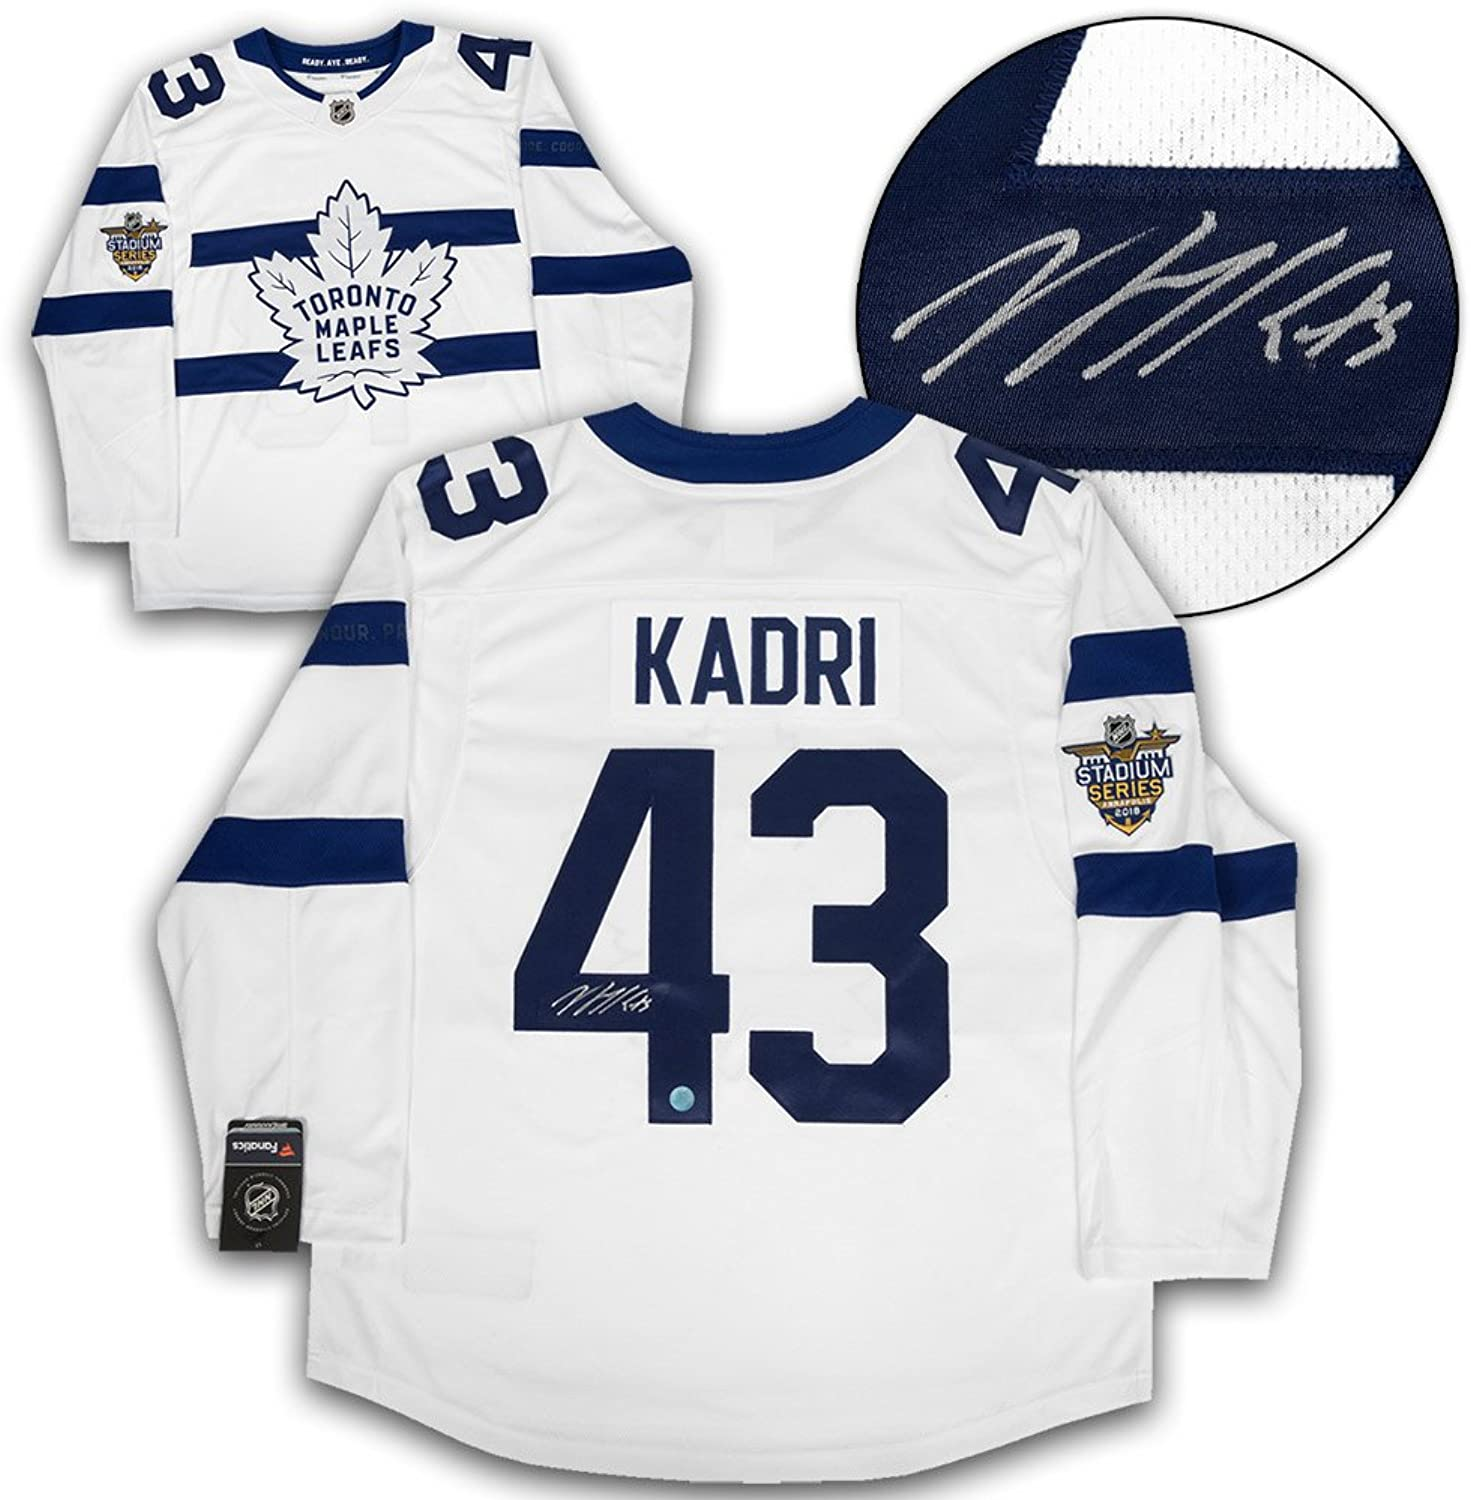 Nazem Kadri Tgoldnto Maple Leafs Signed 2018 Stadium Fanatics Hockey Jersey